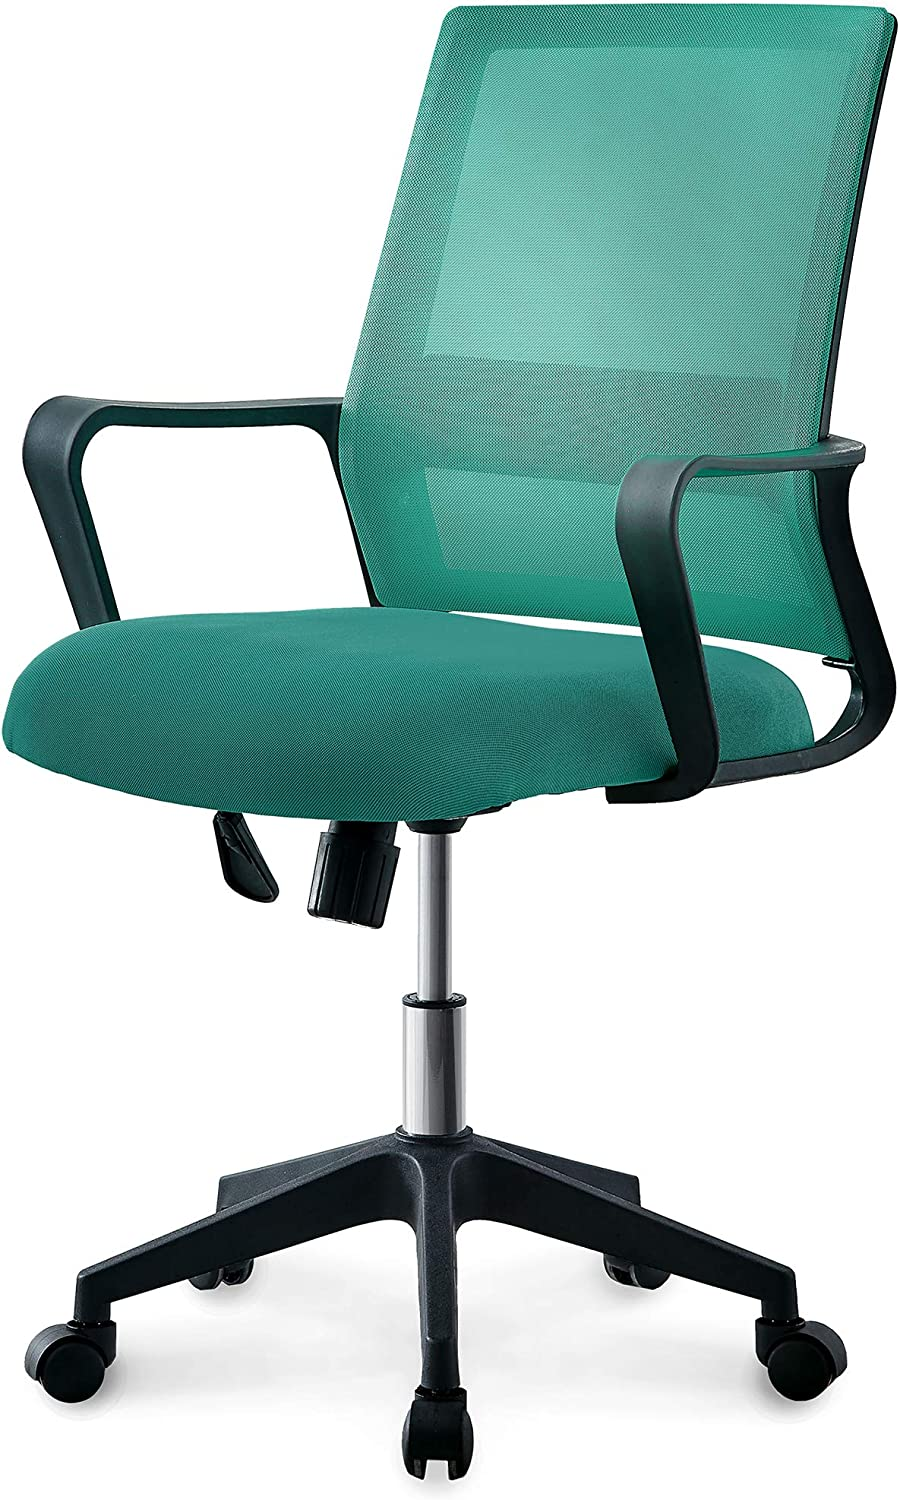 NEO CHAIR Office Chair Computer Desk Chair Gaming – Ergonomic Mid Back Cushion Lumbar Support with Wheels Comfortable Green Mesh Racing Seat Adjustable Swivel Rolling Home Executive